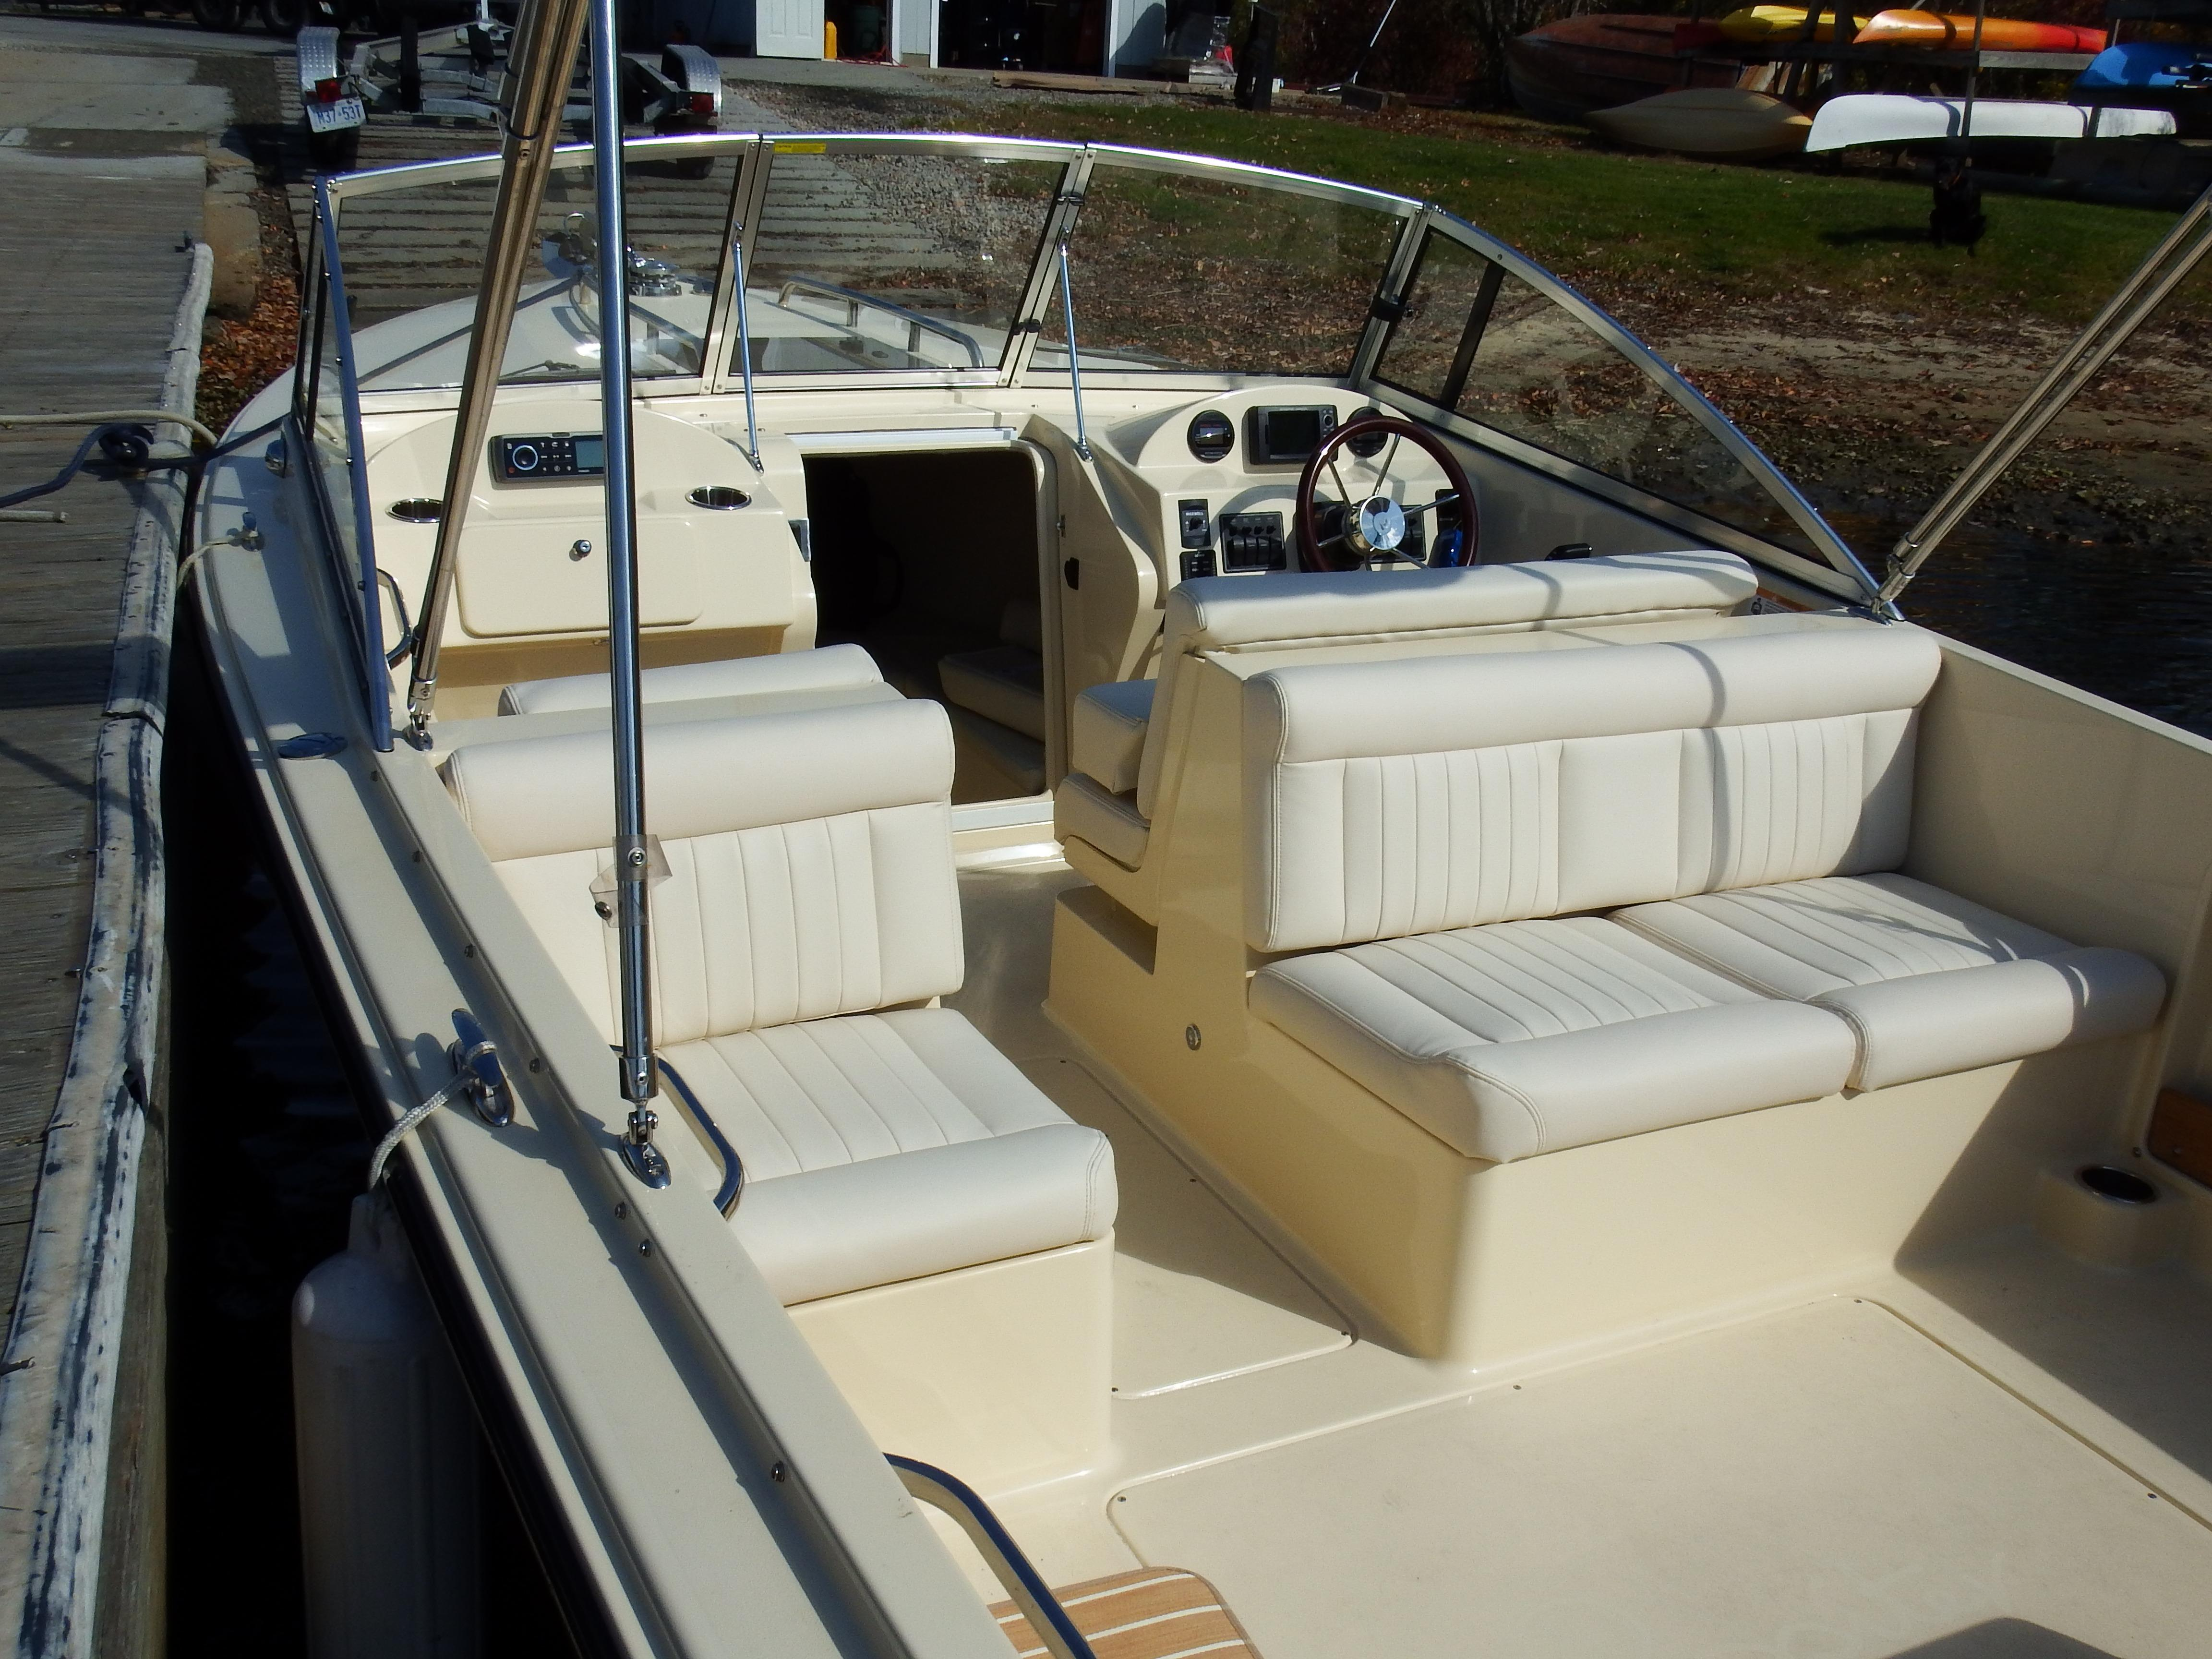 Rossiter 23 Classic Day Boat